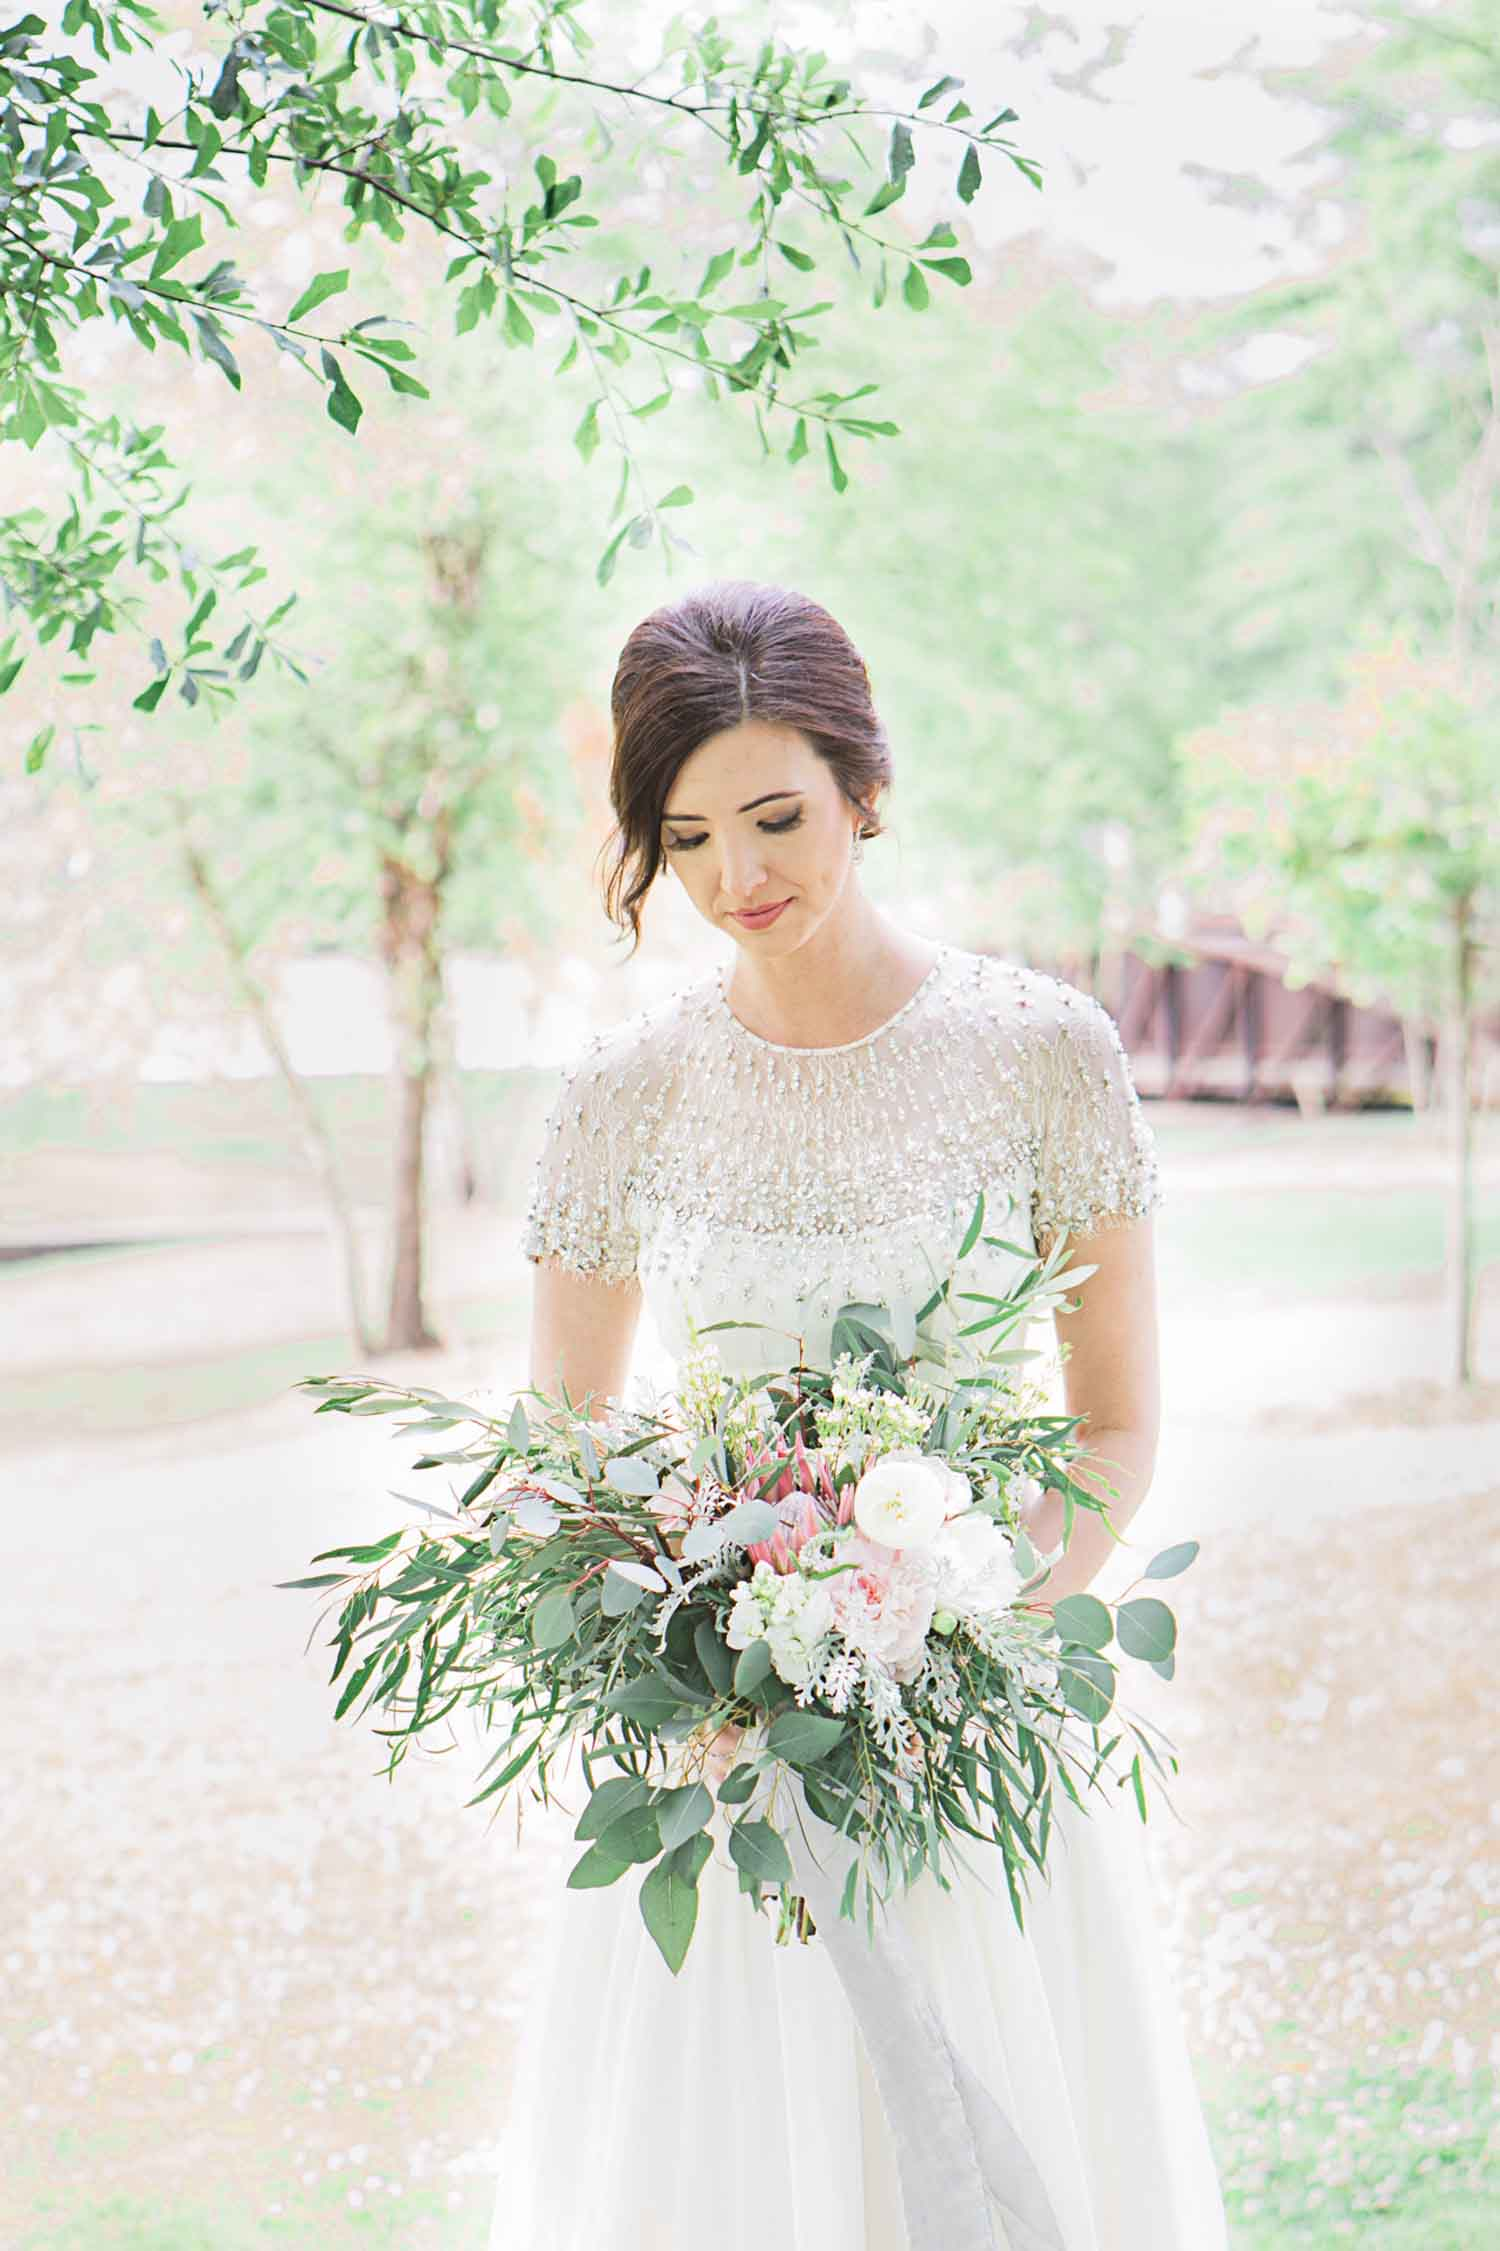 Brittany's bouquet, styled by Suzanne Martensen at Stems and Styles, includes greenery and an asymmetrical look emblematic of the growing trend toward organic and natural at weddings. Photo:  Angela Karen